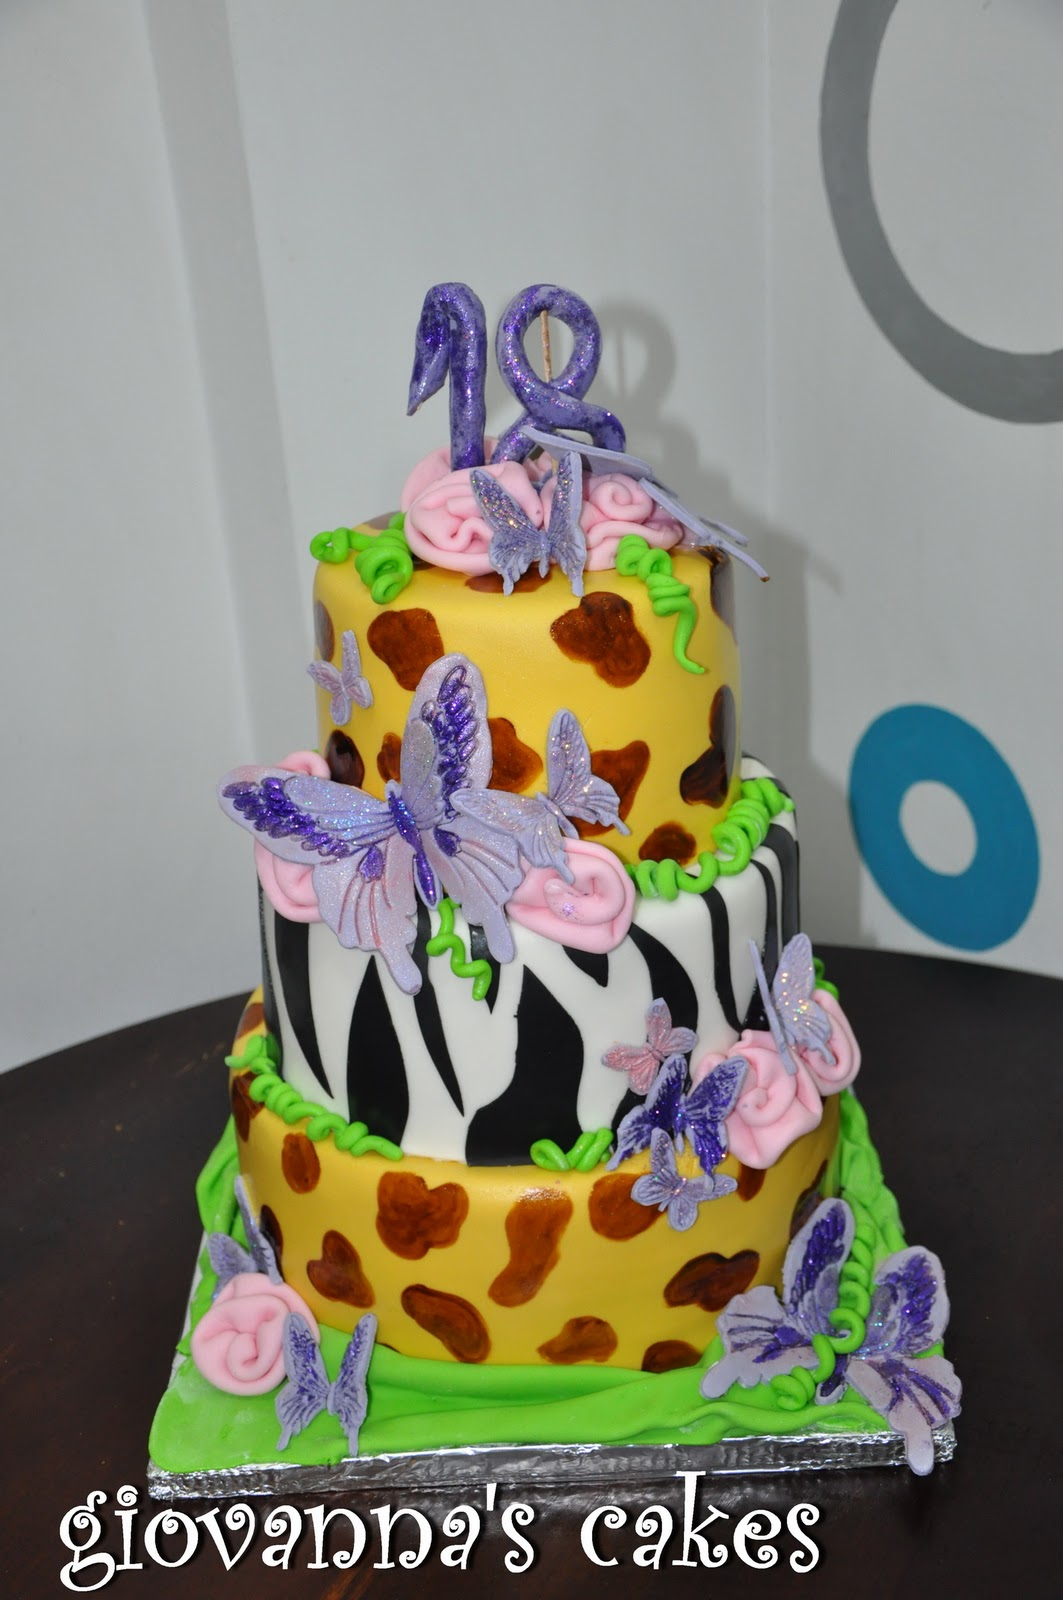 I Think My Cake Is Sweetbeautiful Daring And Modern All In One Just Like An 18 Year Old